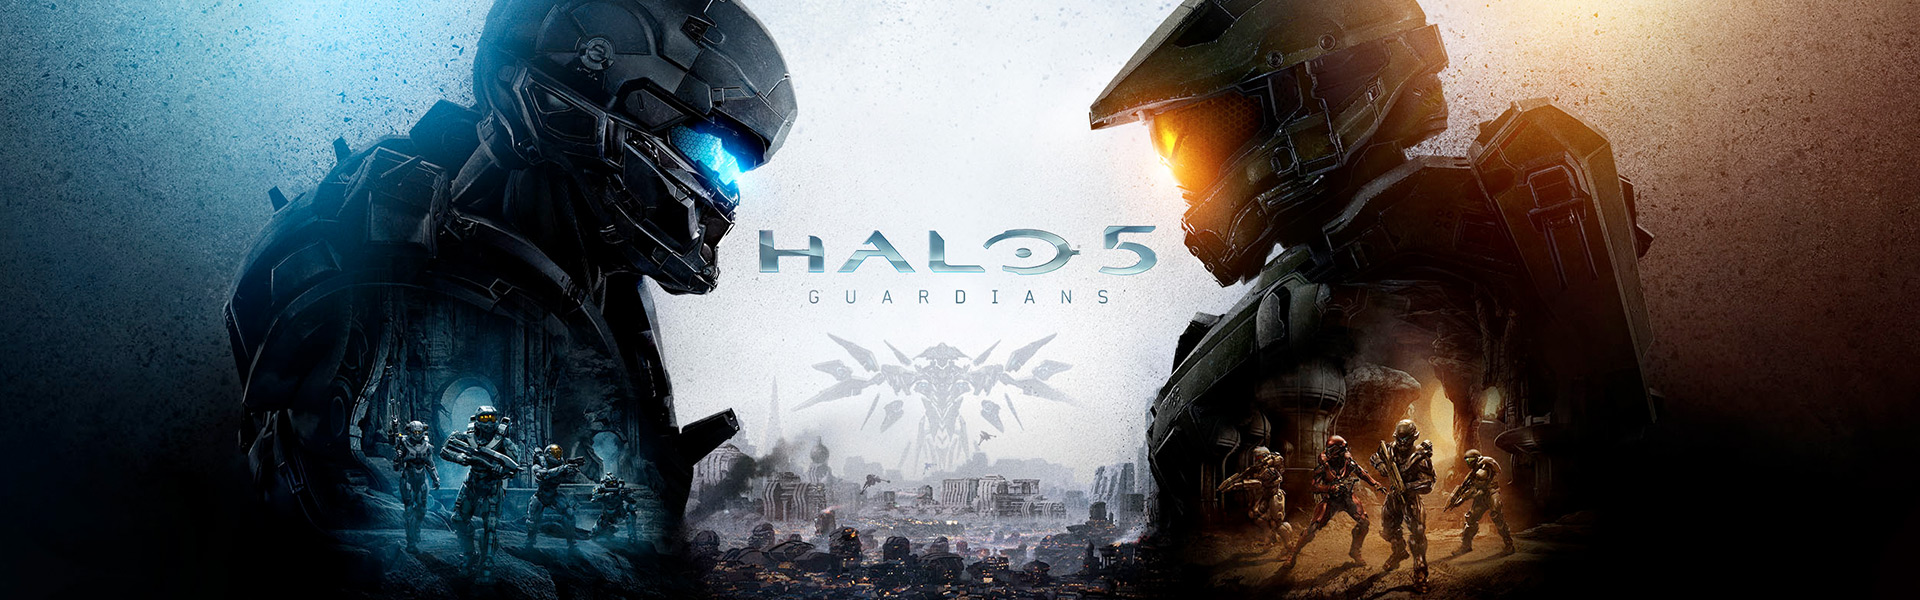 Halo 5 Guardians, Two Spartans facing each other